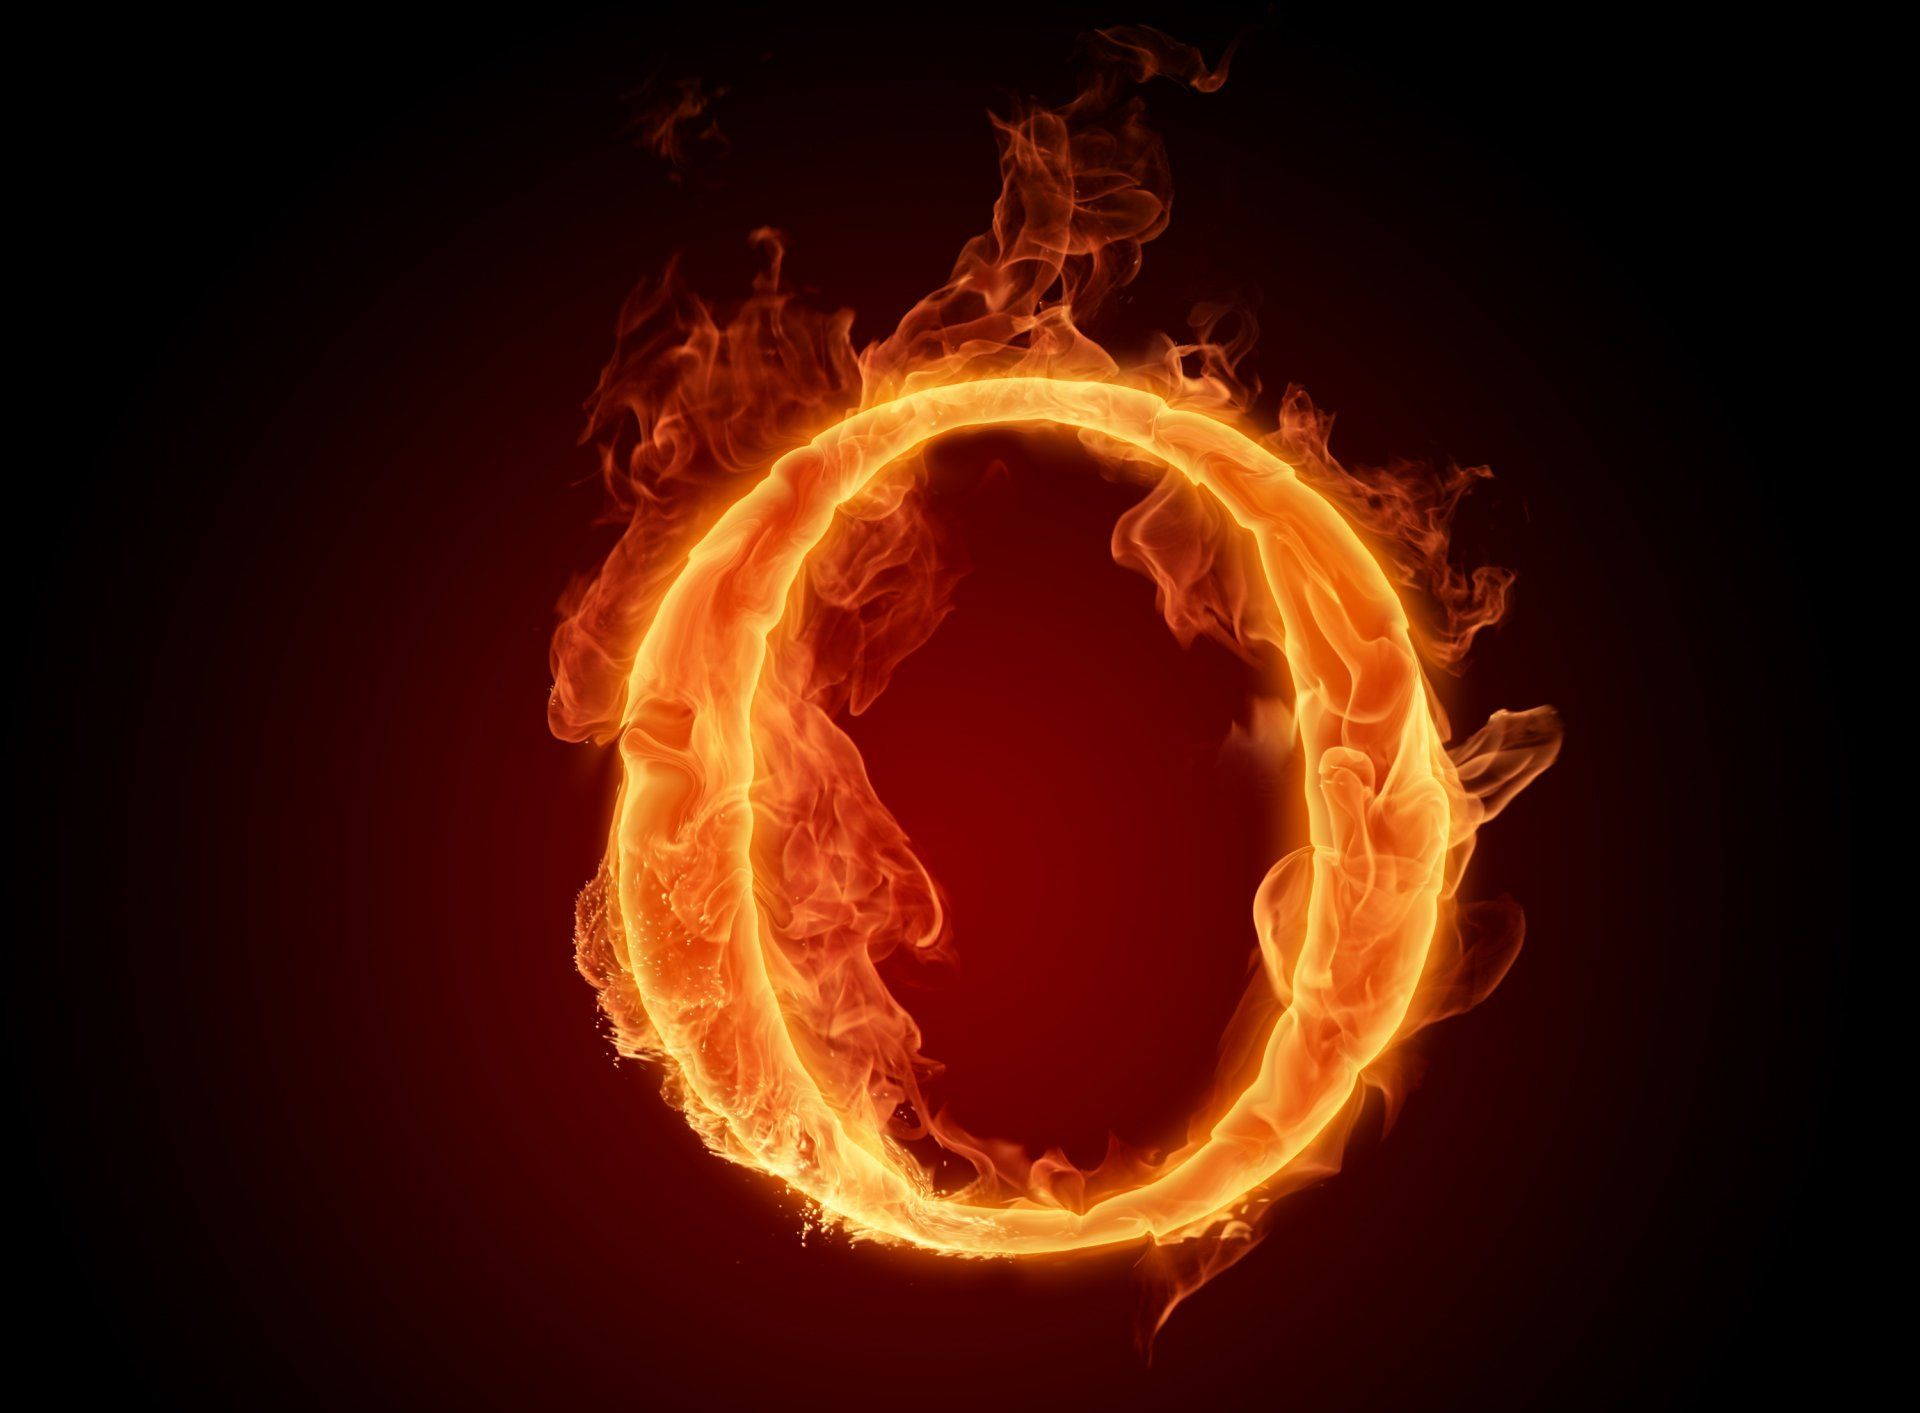 Letter Lit Wallpaper Fire Flame O Hd Wallpaper In 2019